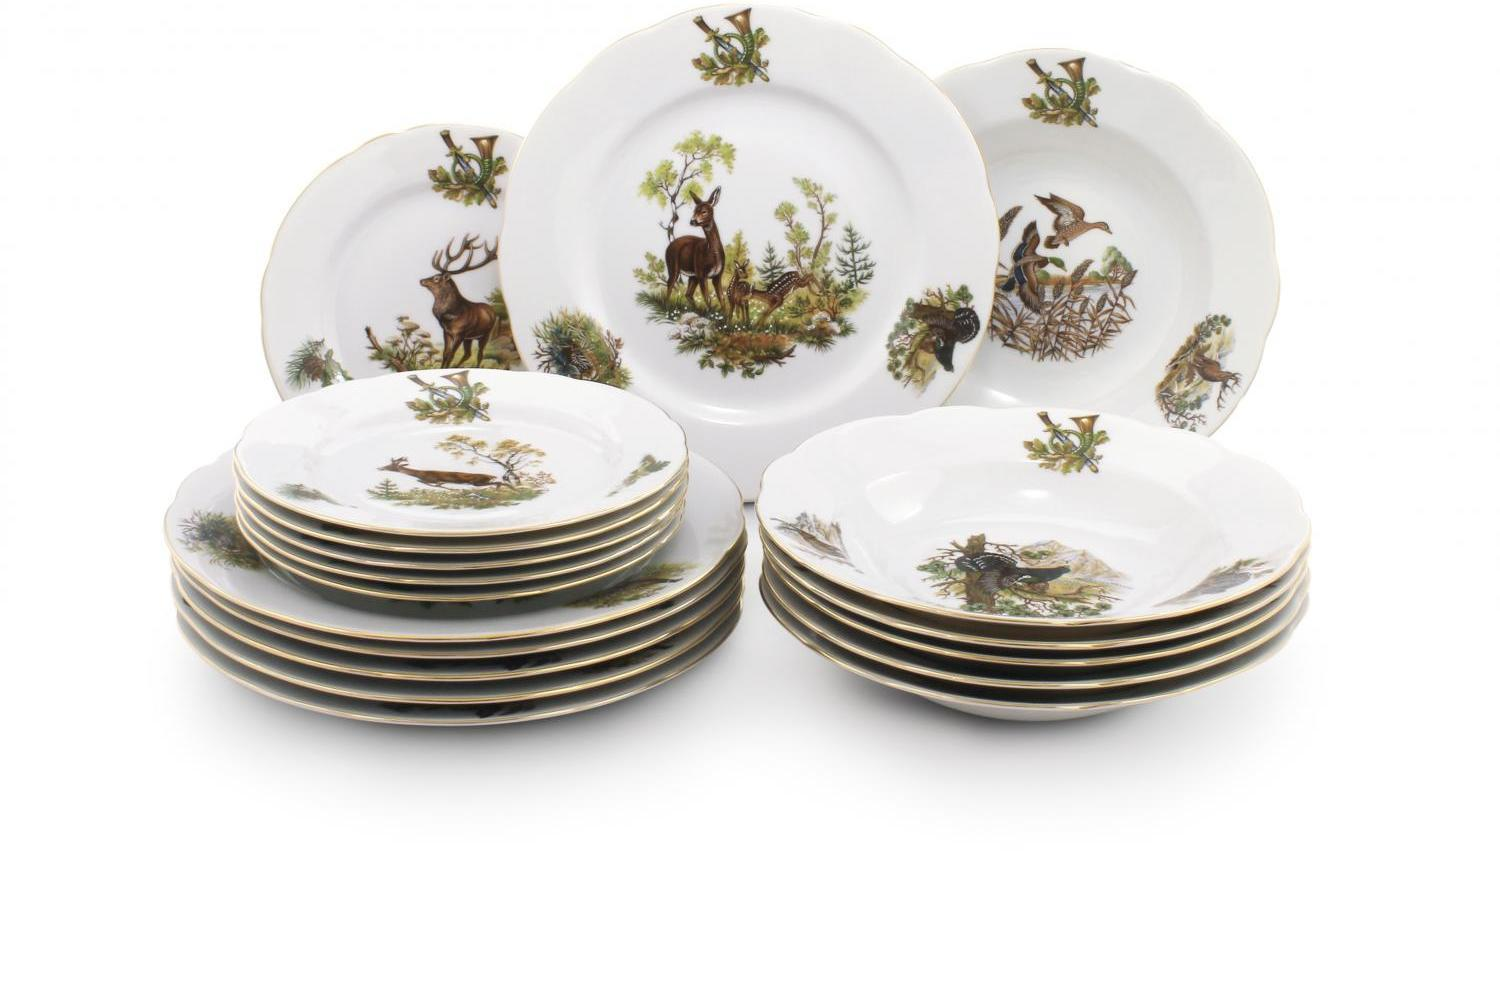 Plate set 18-piece - Hunting motives